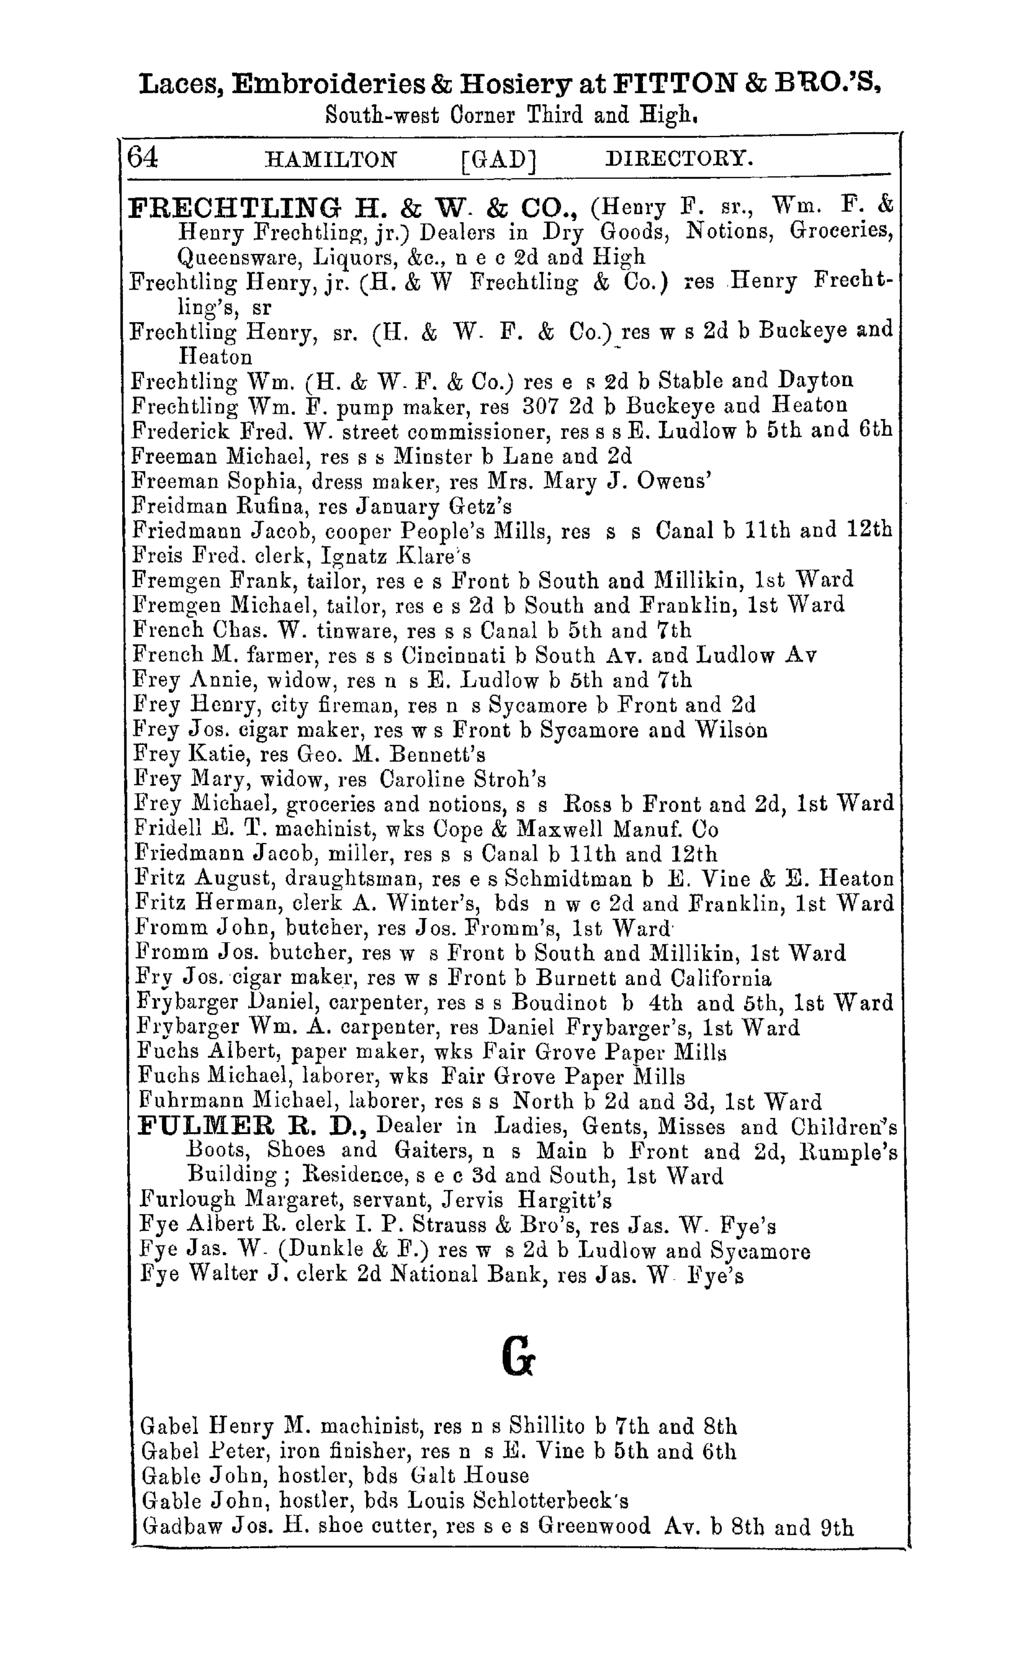 "Laces, Embroideries & Hosiery at FITTON & BRO.'S, South-west Corner Third and High, 64 HAMILTON [GAD] DIRECTORY. FRECHTLING H. & W. & CO., (Henry F. sr., v""'m. F. & Henry Frechtling, jr."